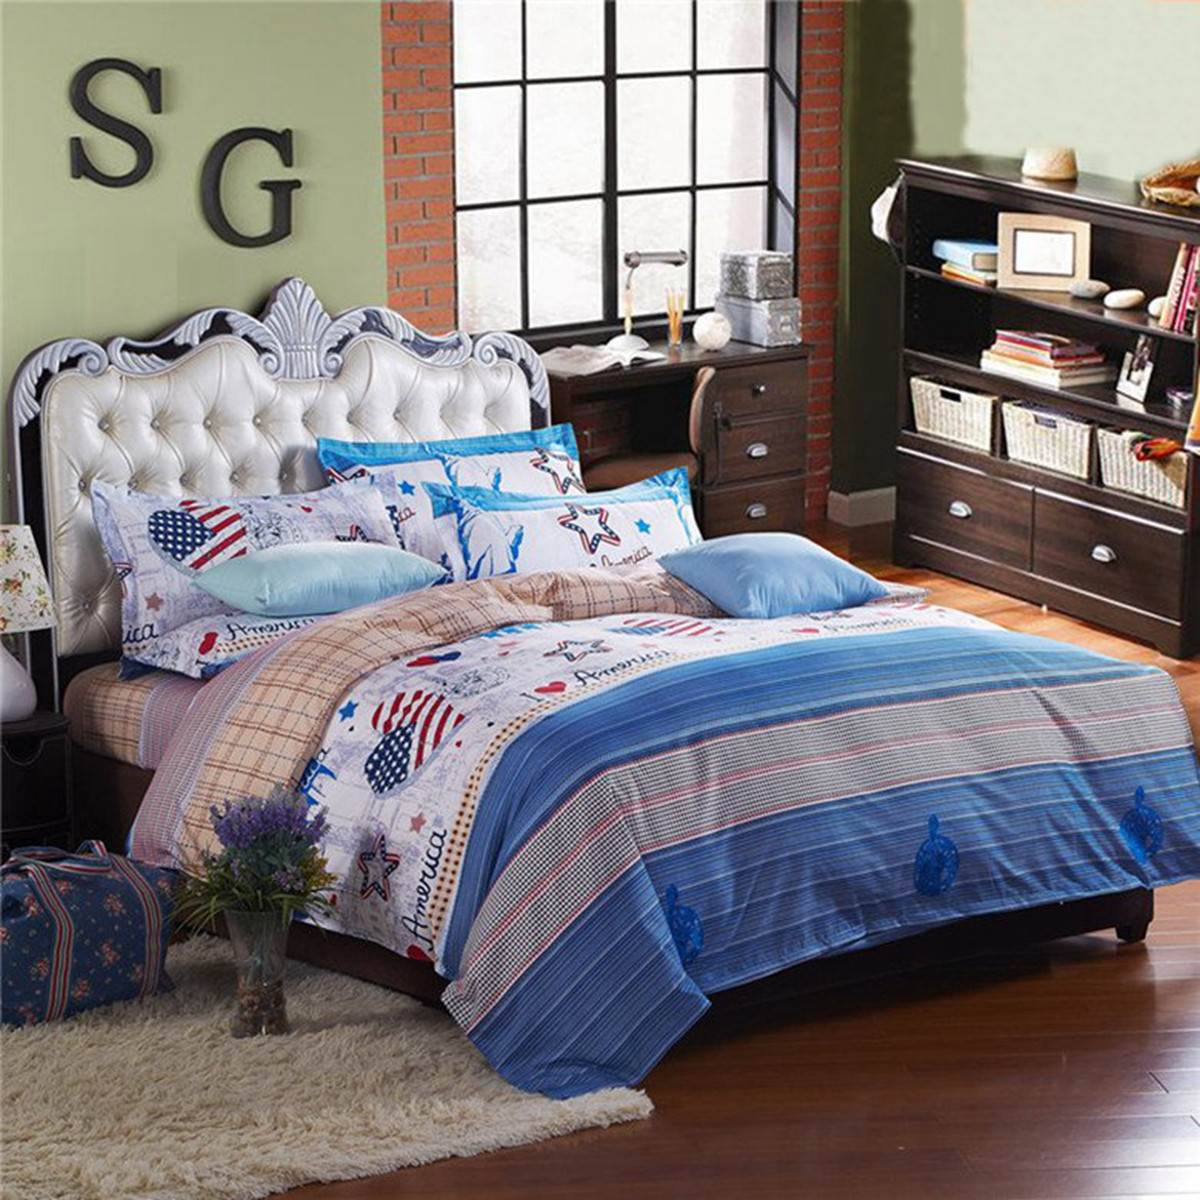 Fashion USA Heart Printed Bedding Sets American Party Single Double King Size Polyester Quilt Duvet Cover Pillowcases Bed Sheet